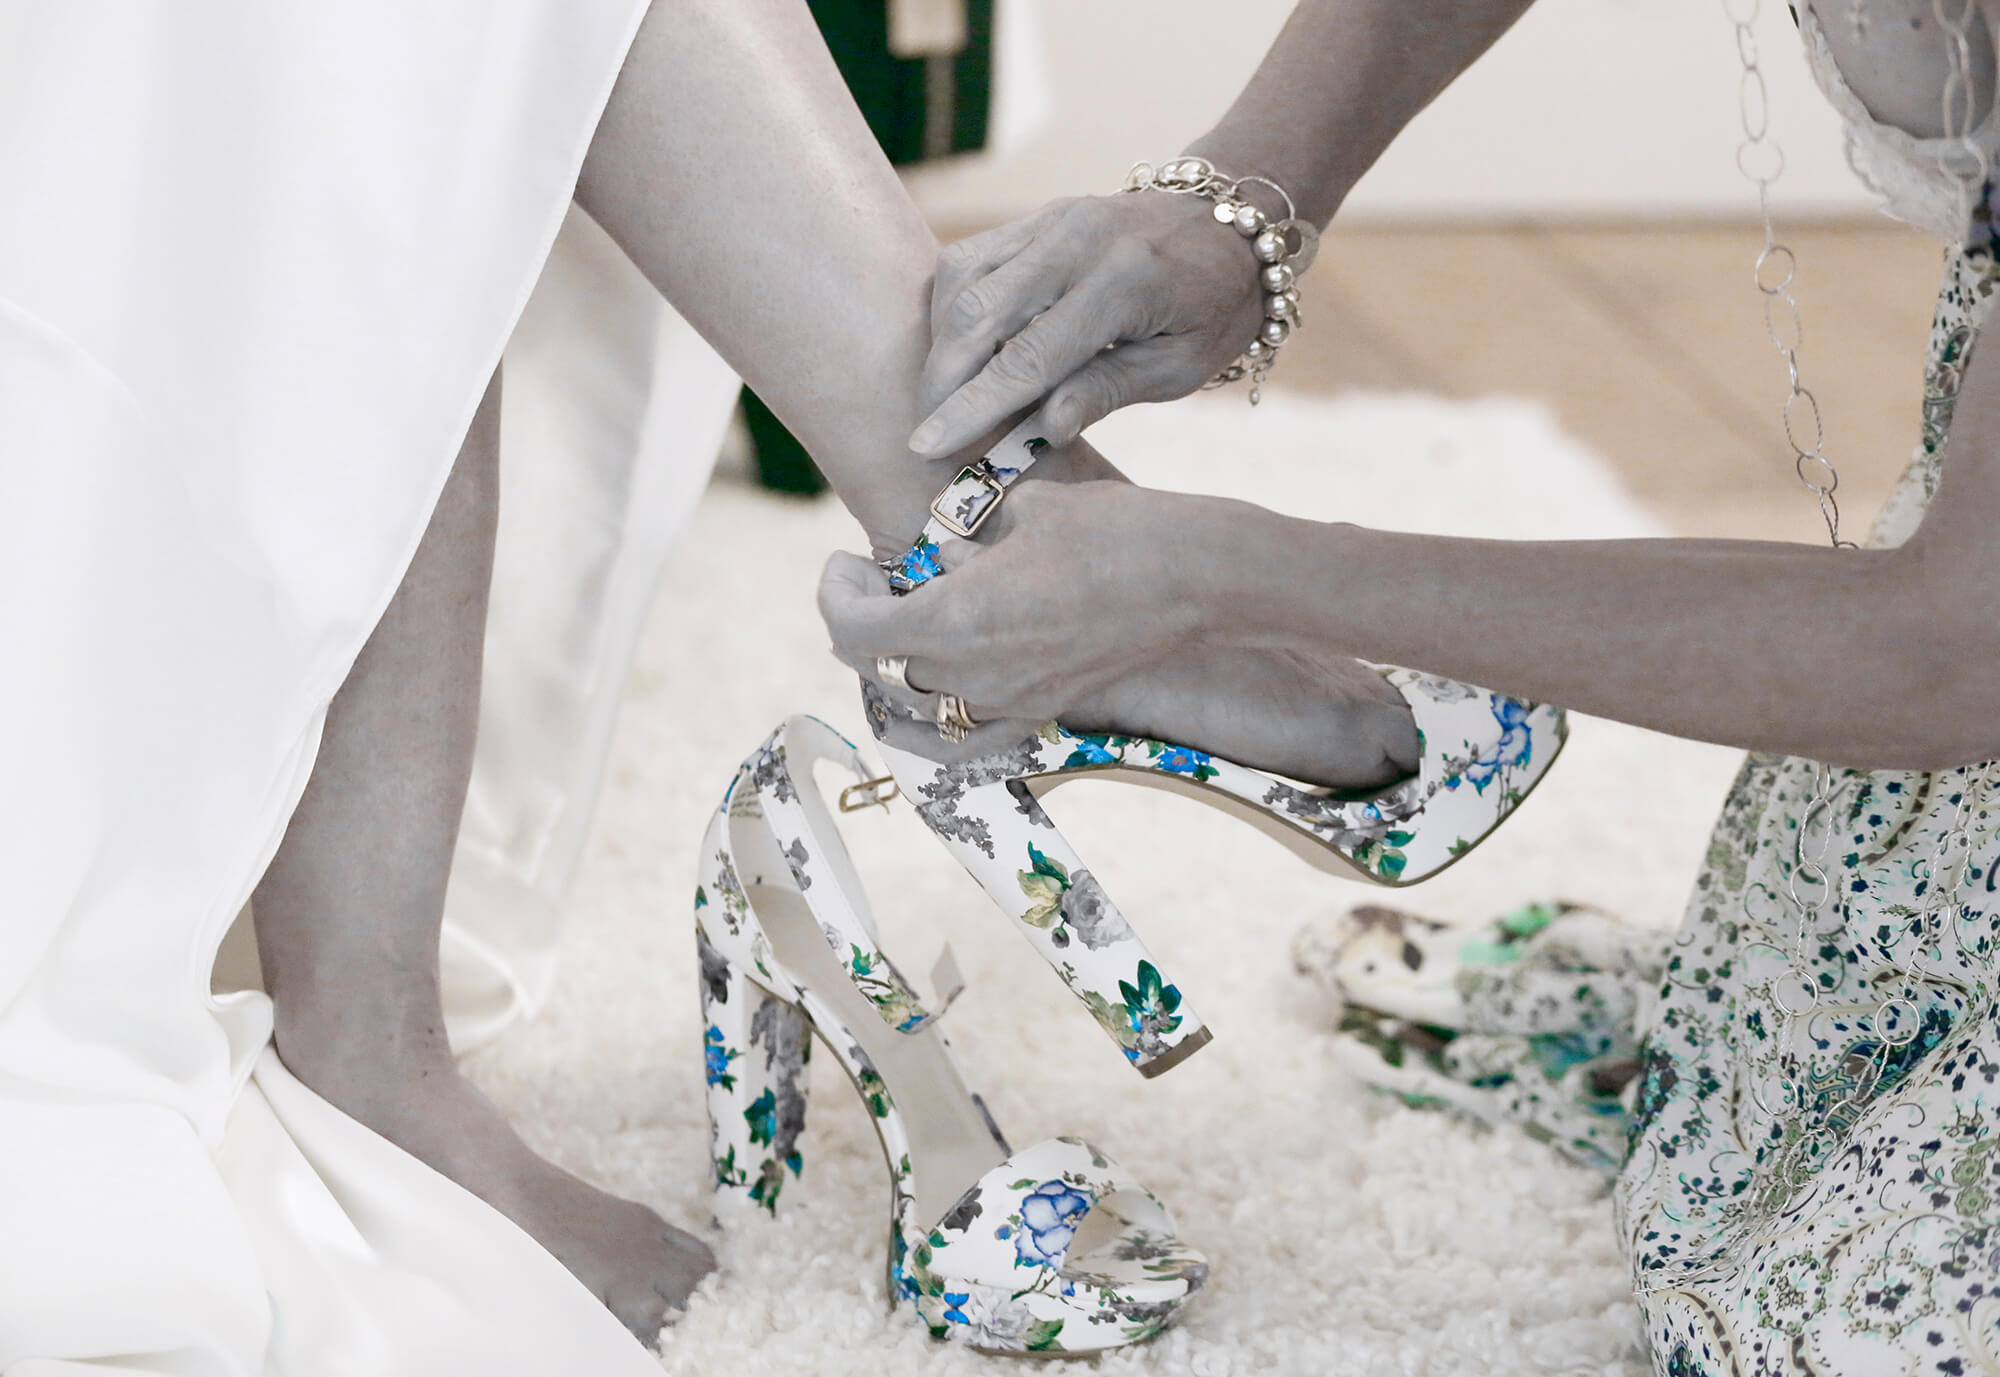 Wedding photography of a bride getting help putting on her shoes